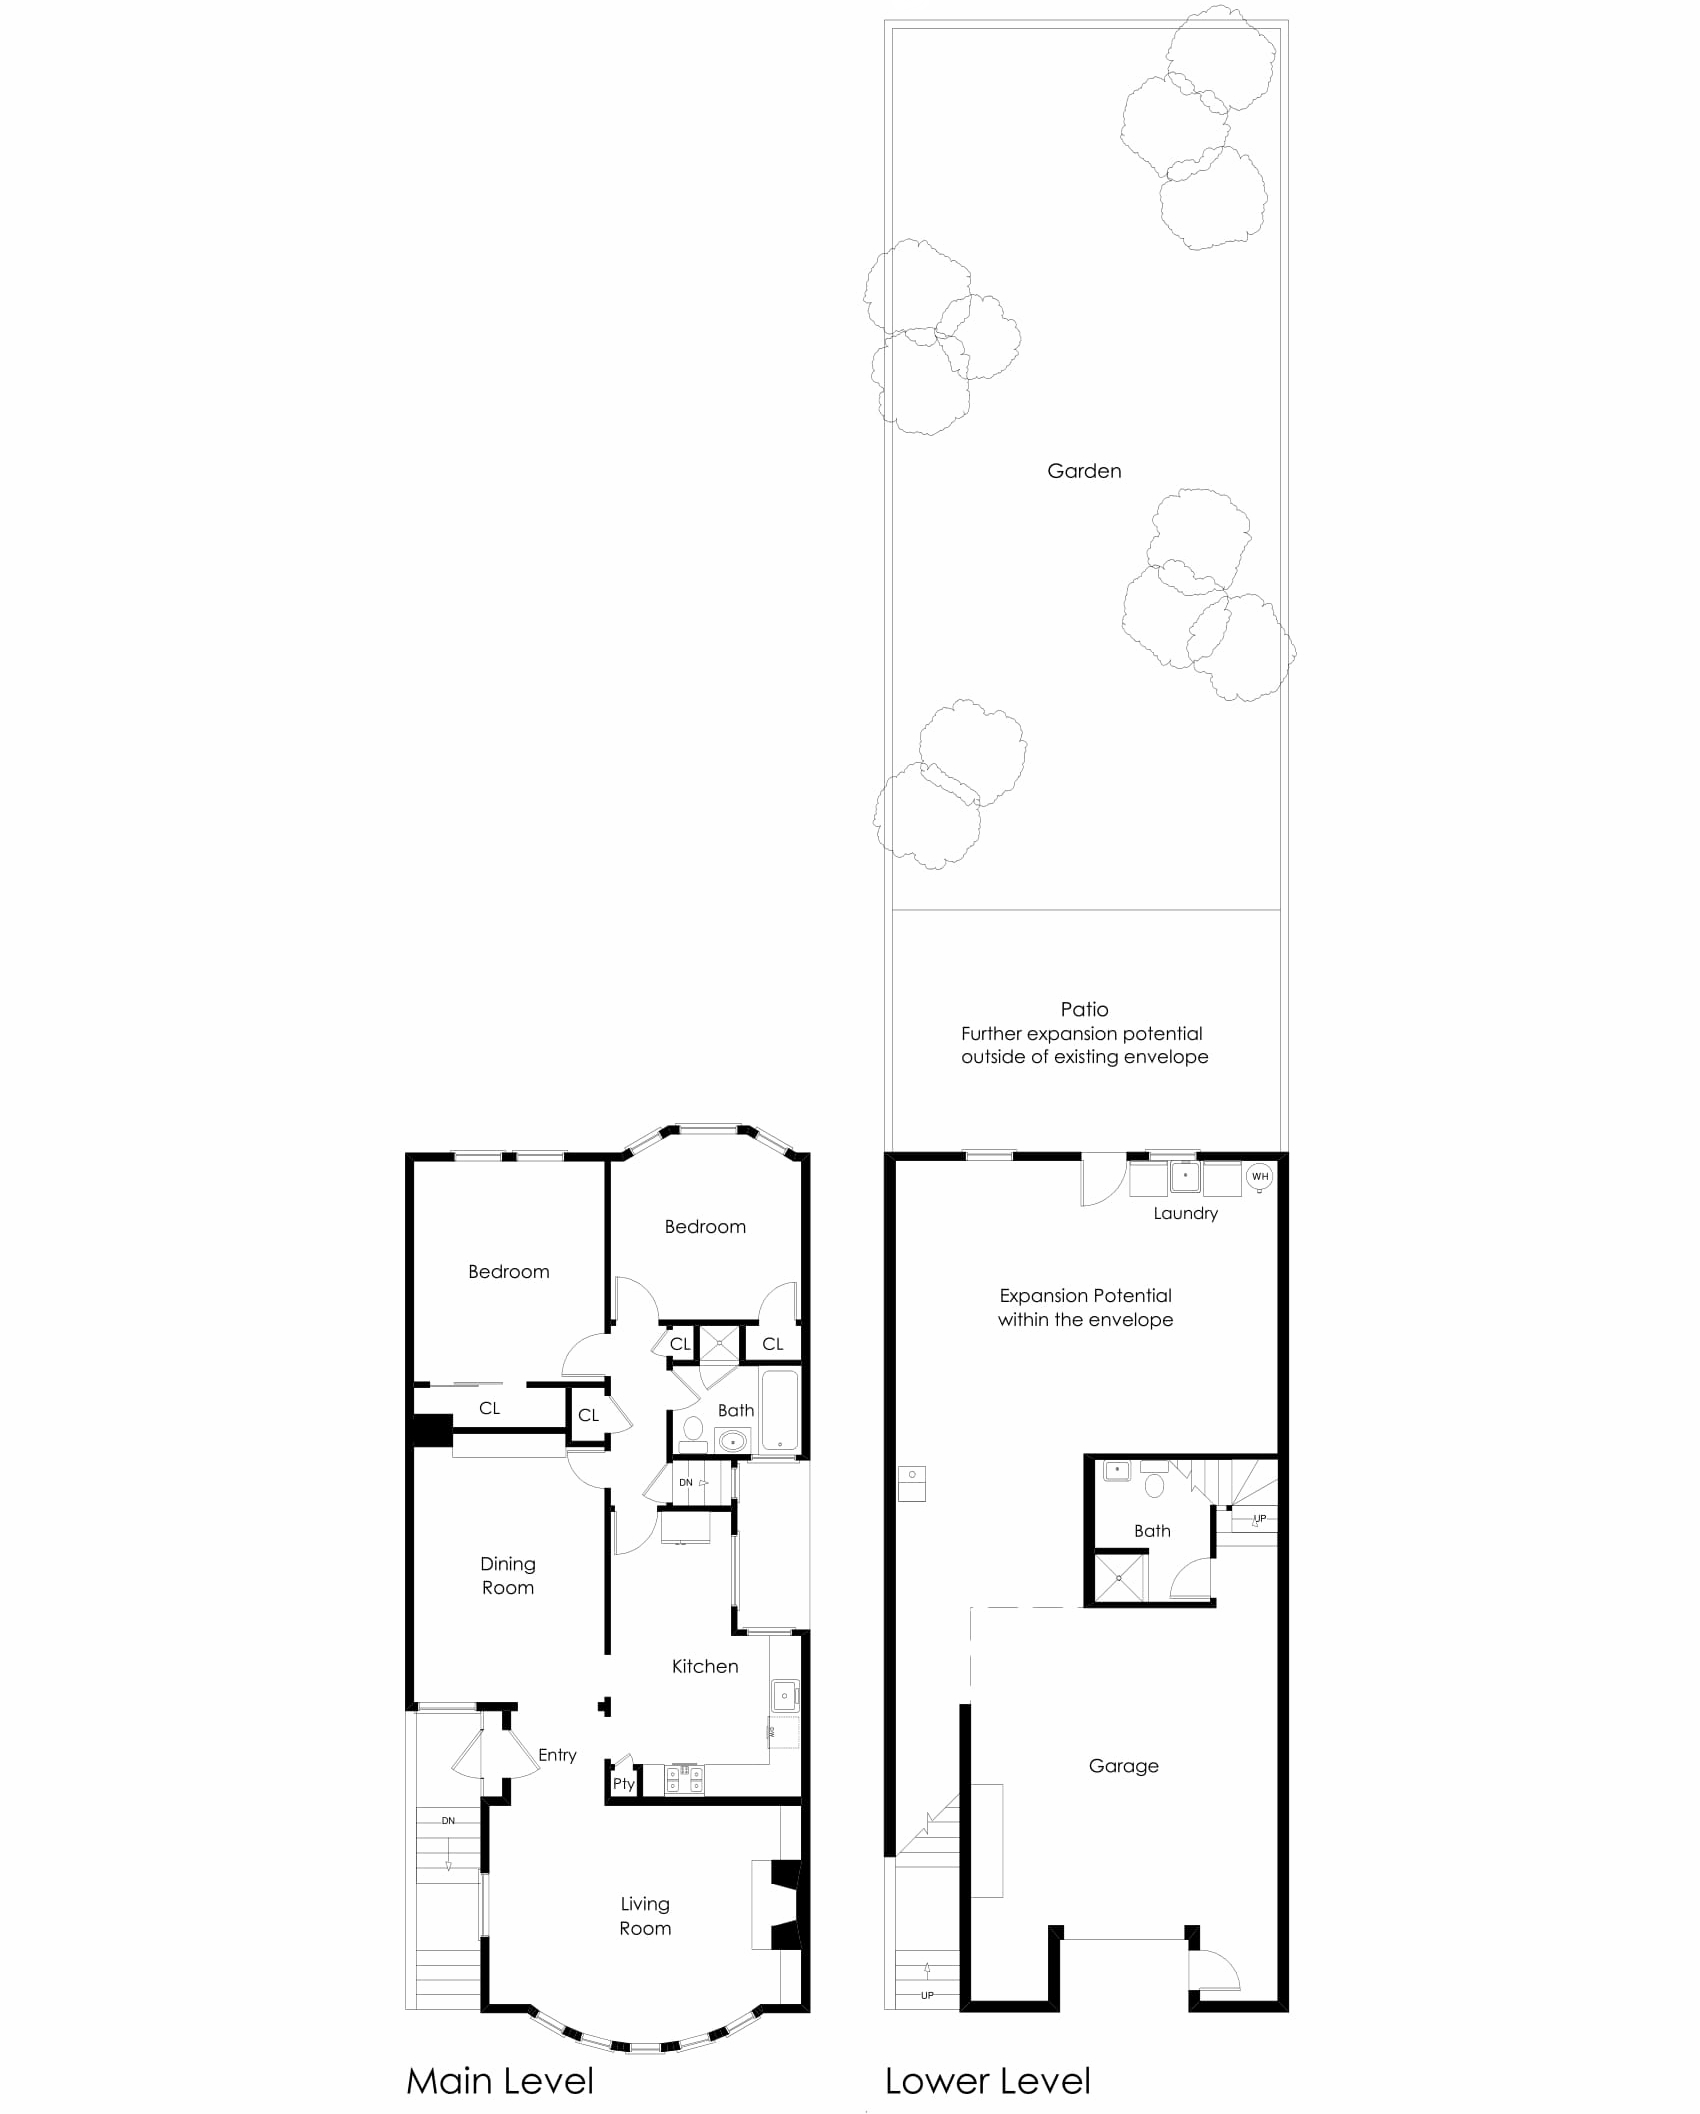 Chief Architect 8.0 543 Chenery Street Compass D Zuzic both floors-1.jpg